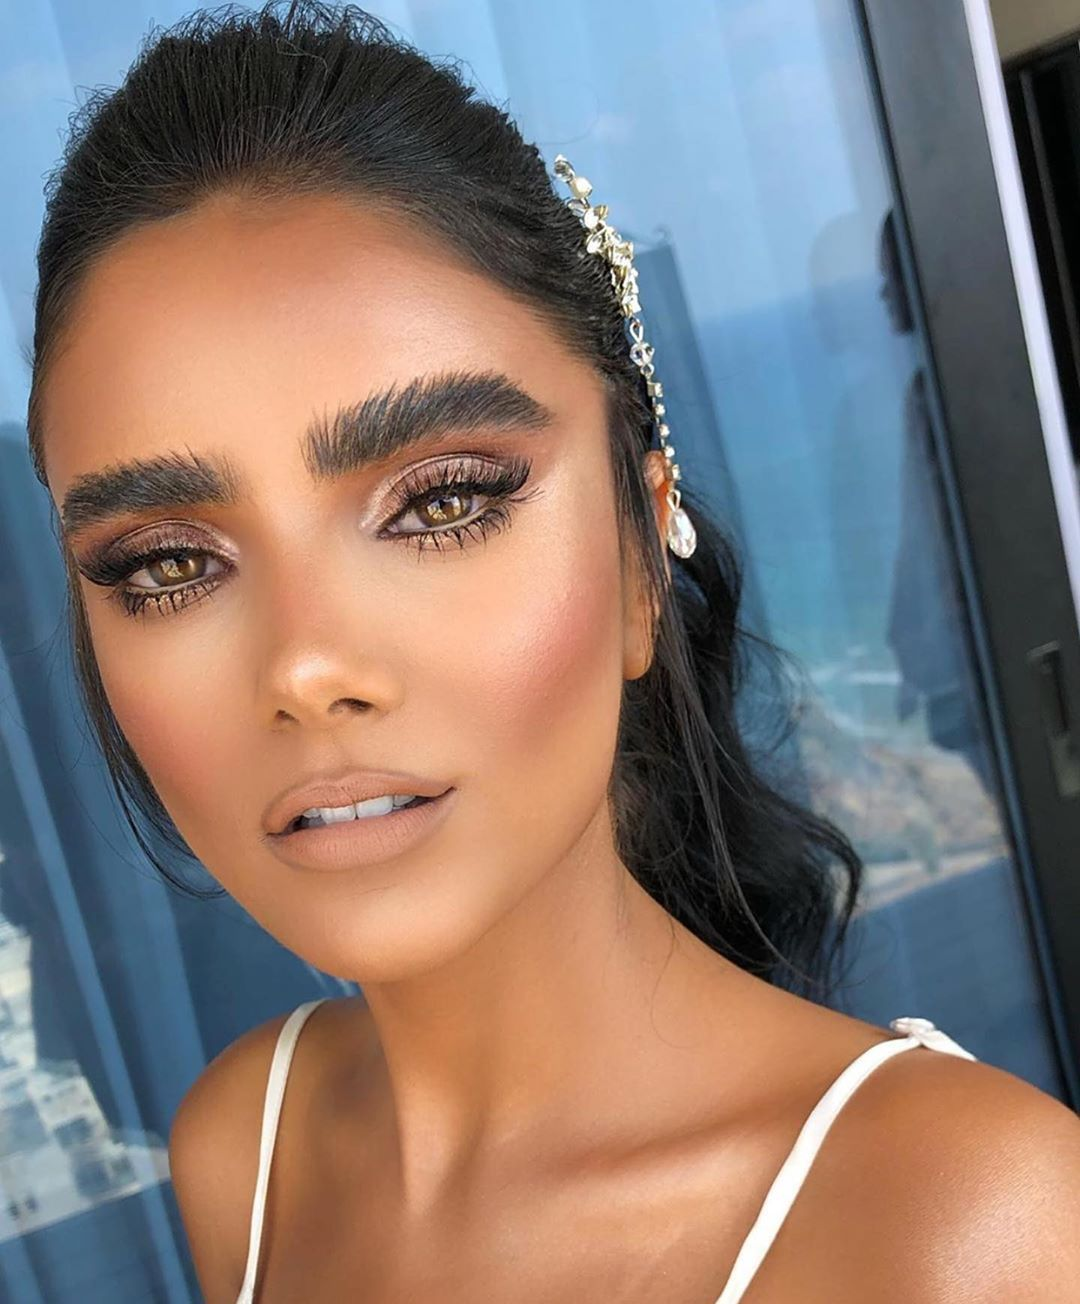 Makeup Artist Essex On Instagram Major Inspo From Bar Ohayon This Makeup Has Me Written All Over It Beautiful Makeup Cute Makeup Hair And Makeup Artist